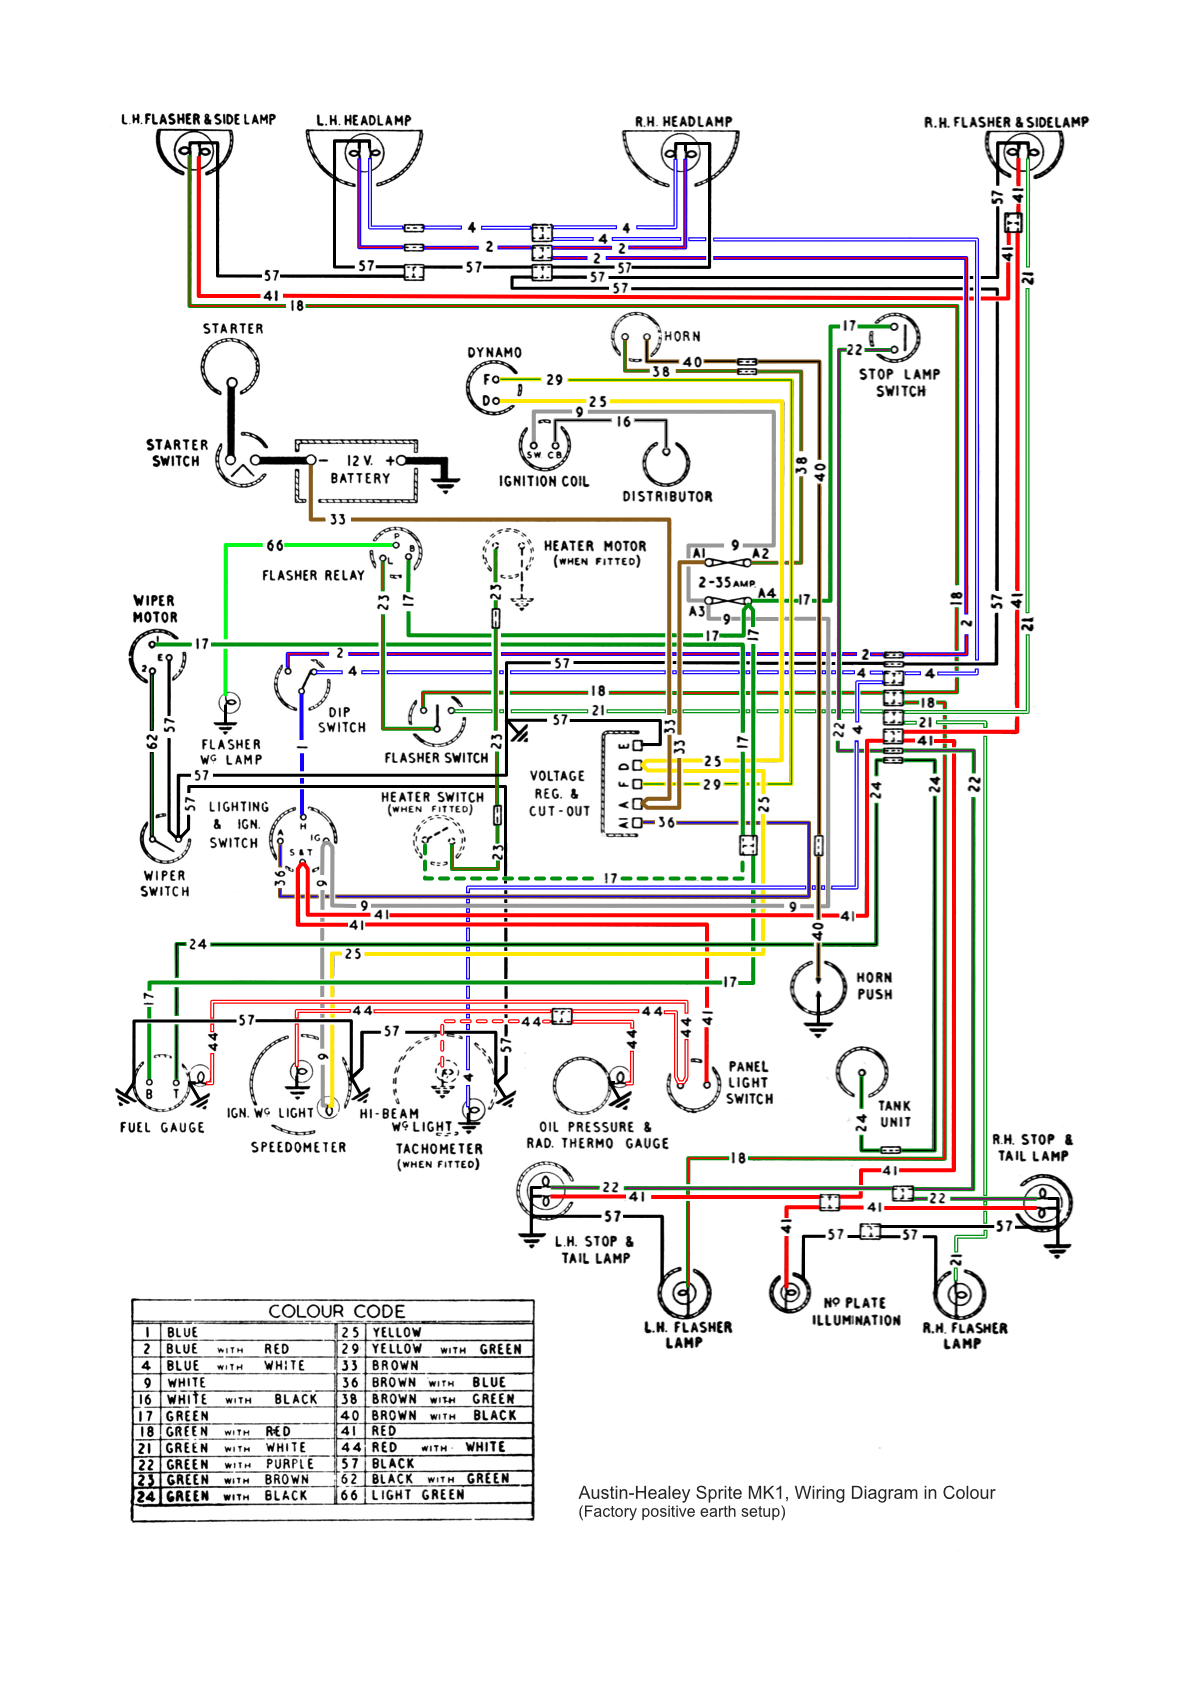 Jaguar mk1 wiring diagram wiring data a correction to that color coded bugeye wiring diagram the sprite wiring diagram 2000 jaguar s type interior jaguar mk1 wiring diagram asfbconference2016 Gallery